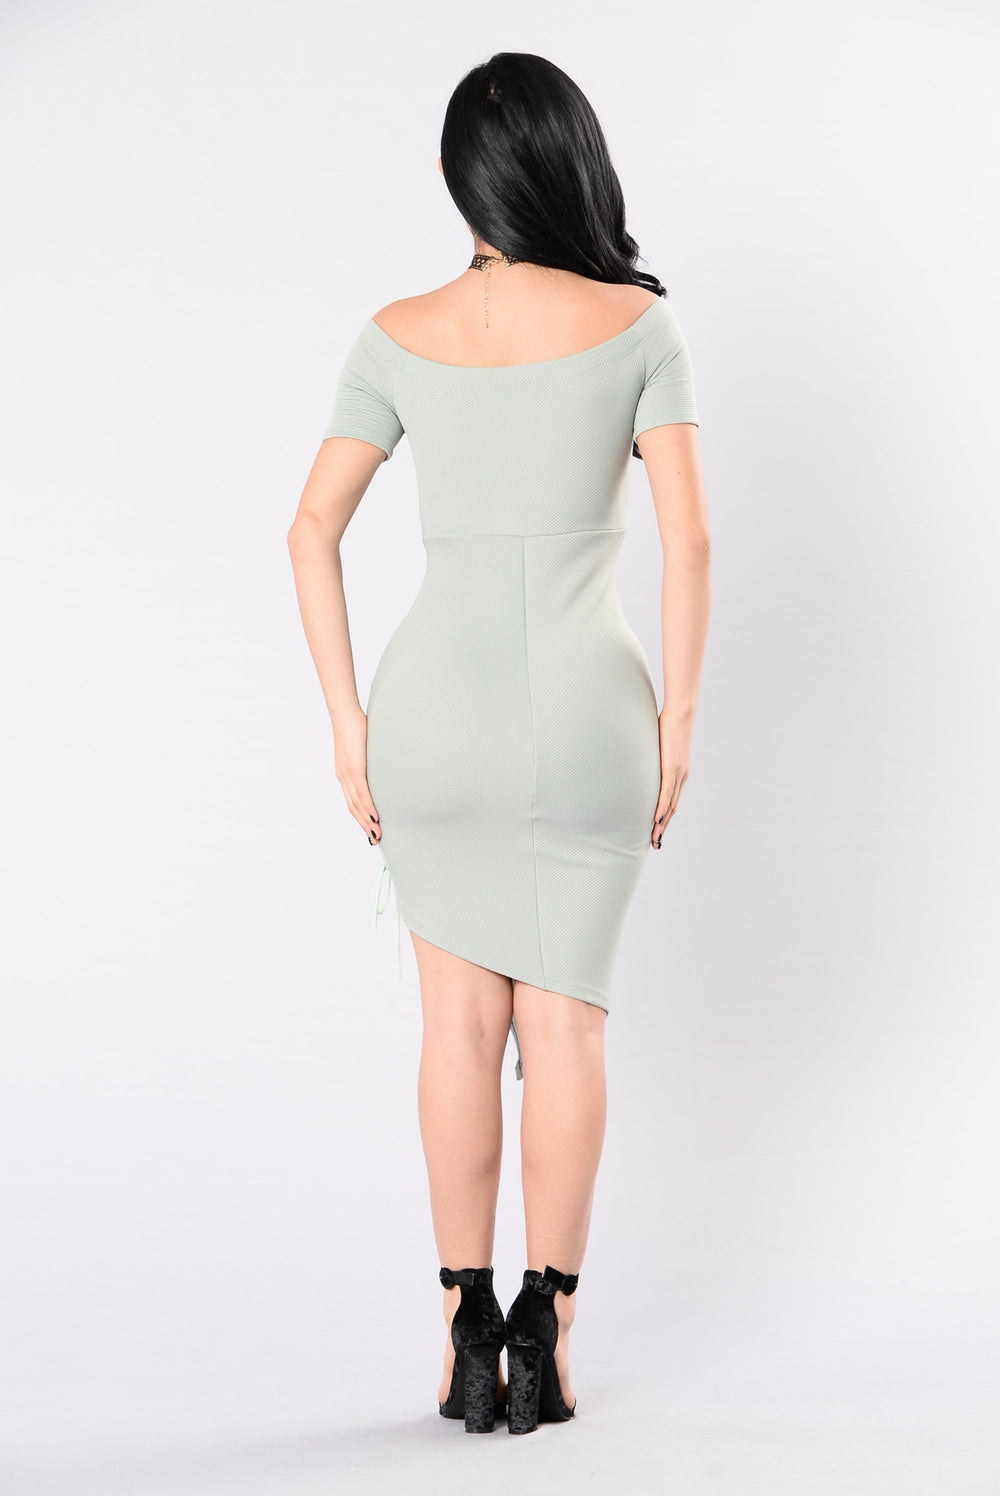 My Type Of Party Dress - Sage